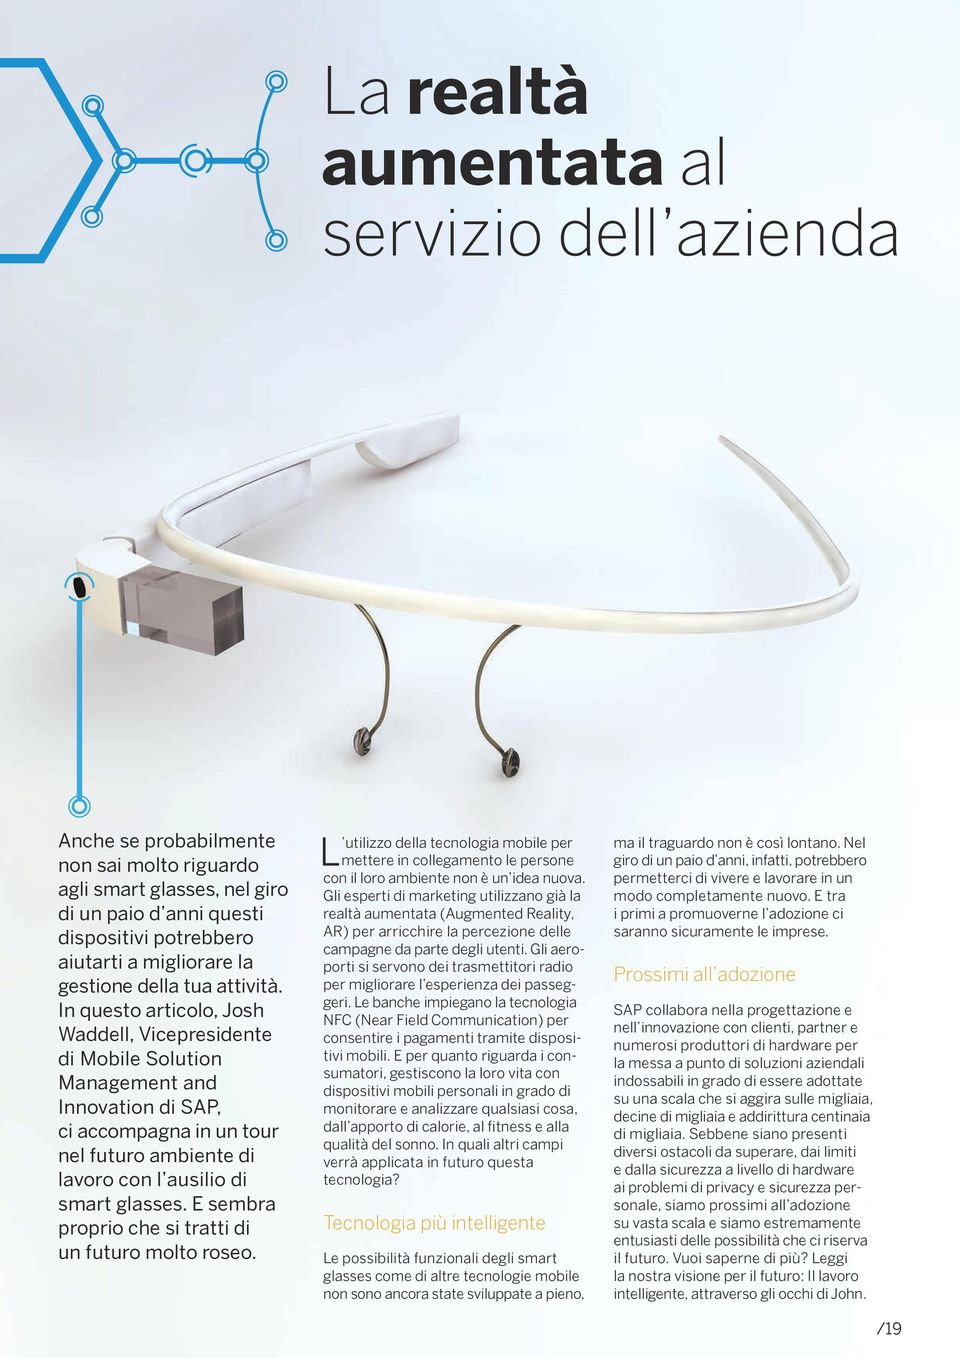 In questo articolo, Josh Waddell, Vicepresidente di Mobile Solution Management and Innovation di SAP, ci accompagna in un tour nel futuro ambiente di lavoro con l ausilio di smart glasses.